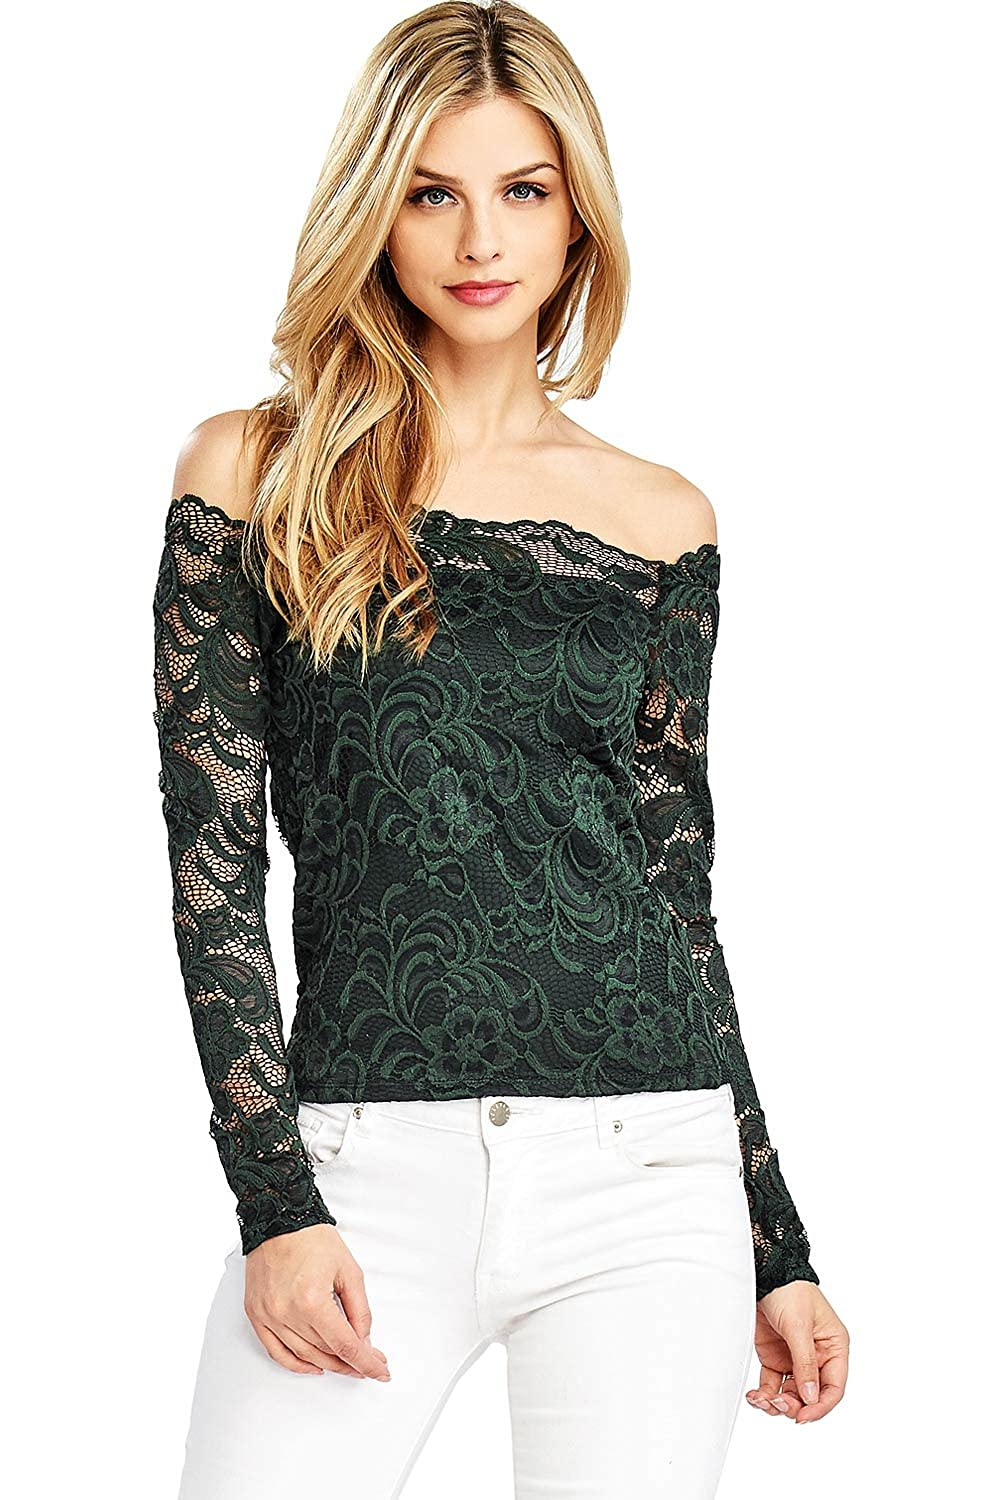 Hunter Green Ambiance Women's Crop Lace OffShoulder Long Sleeve Top